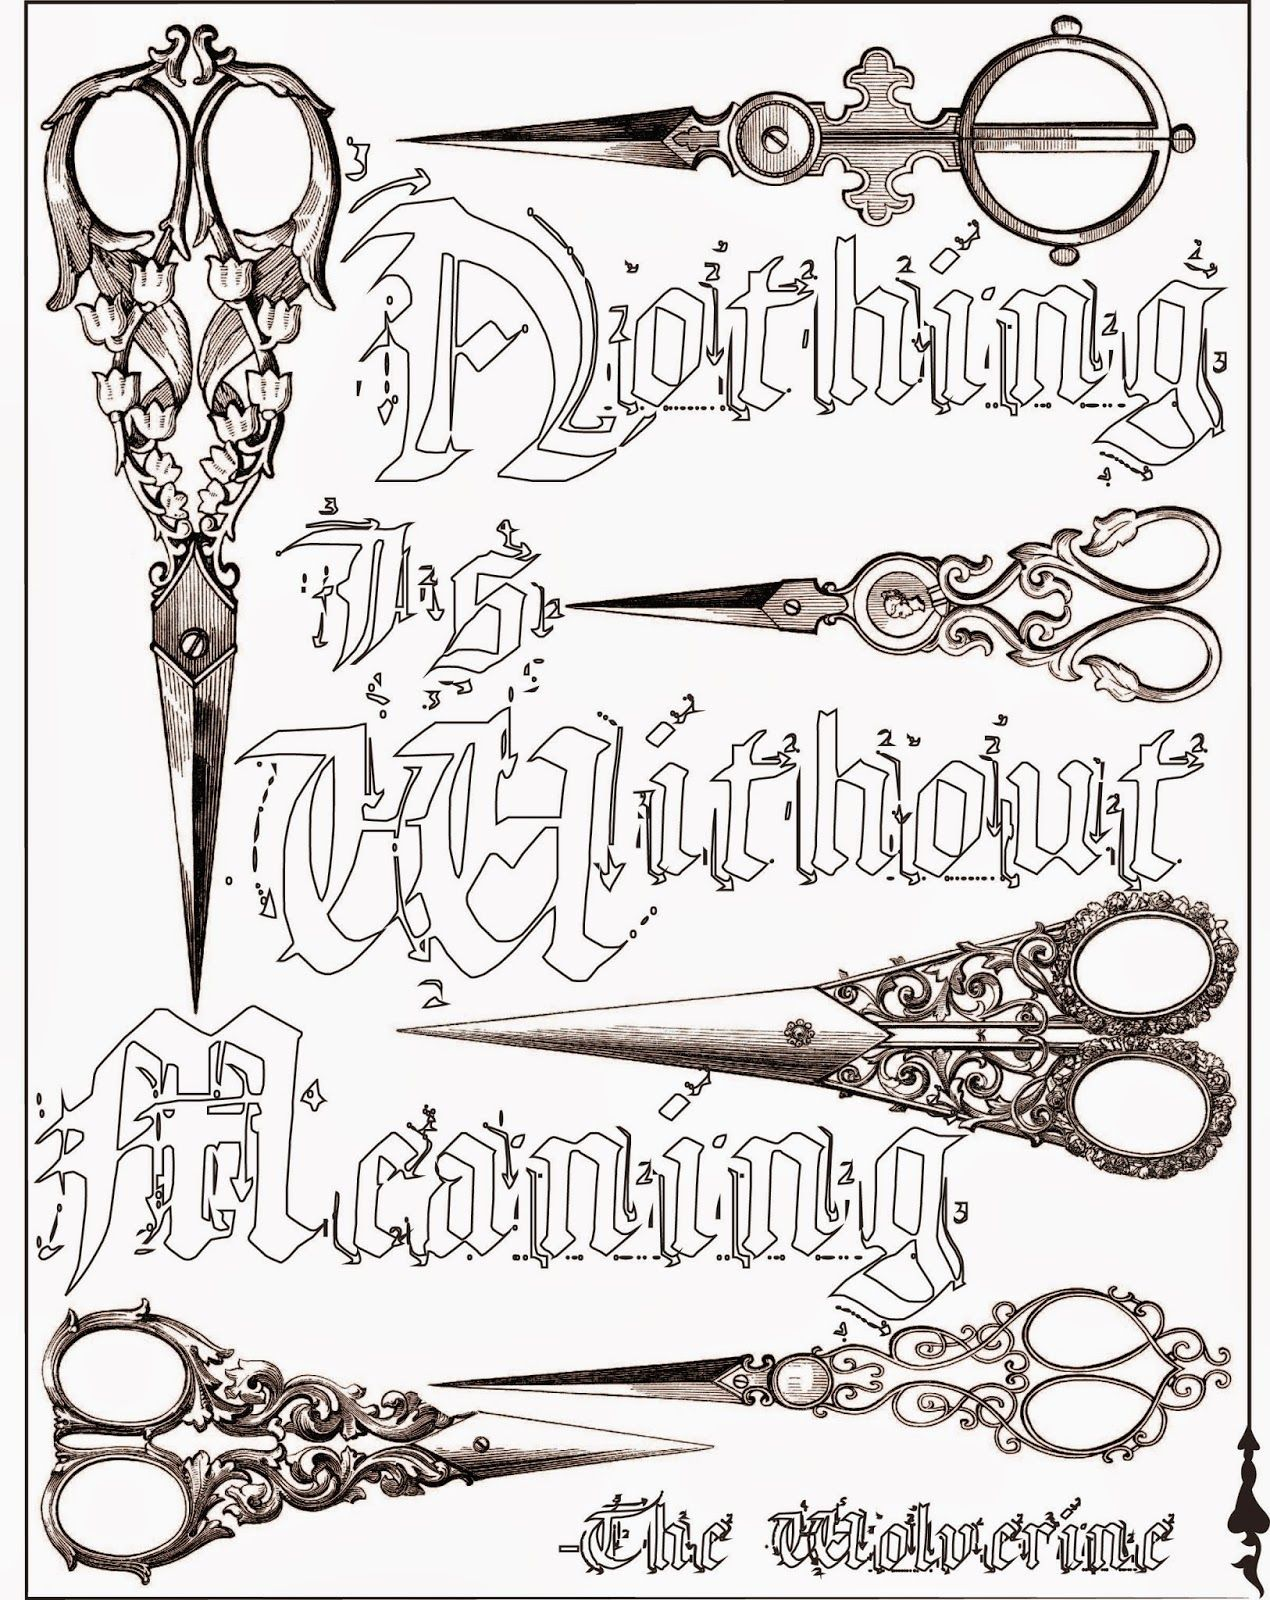 Coloring pages with quotes - Nothing Is Without Meaning Quote Adult Coloring Page Stefanie Girard Scissors